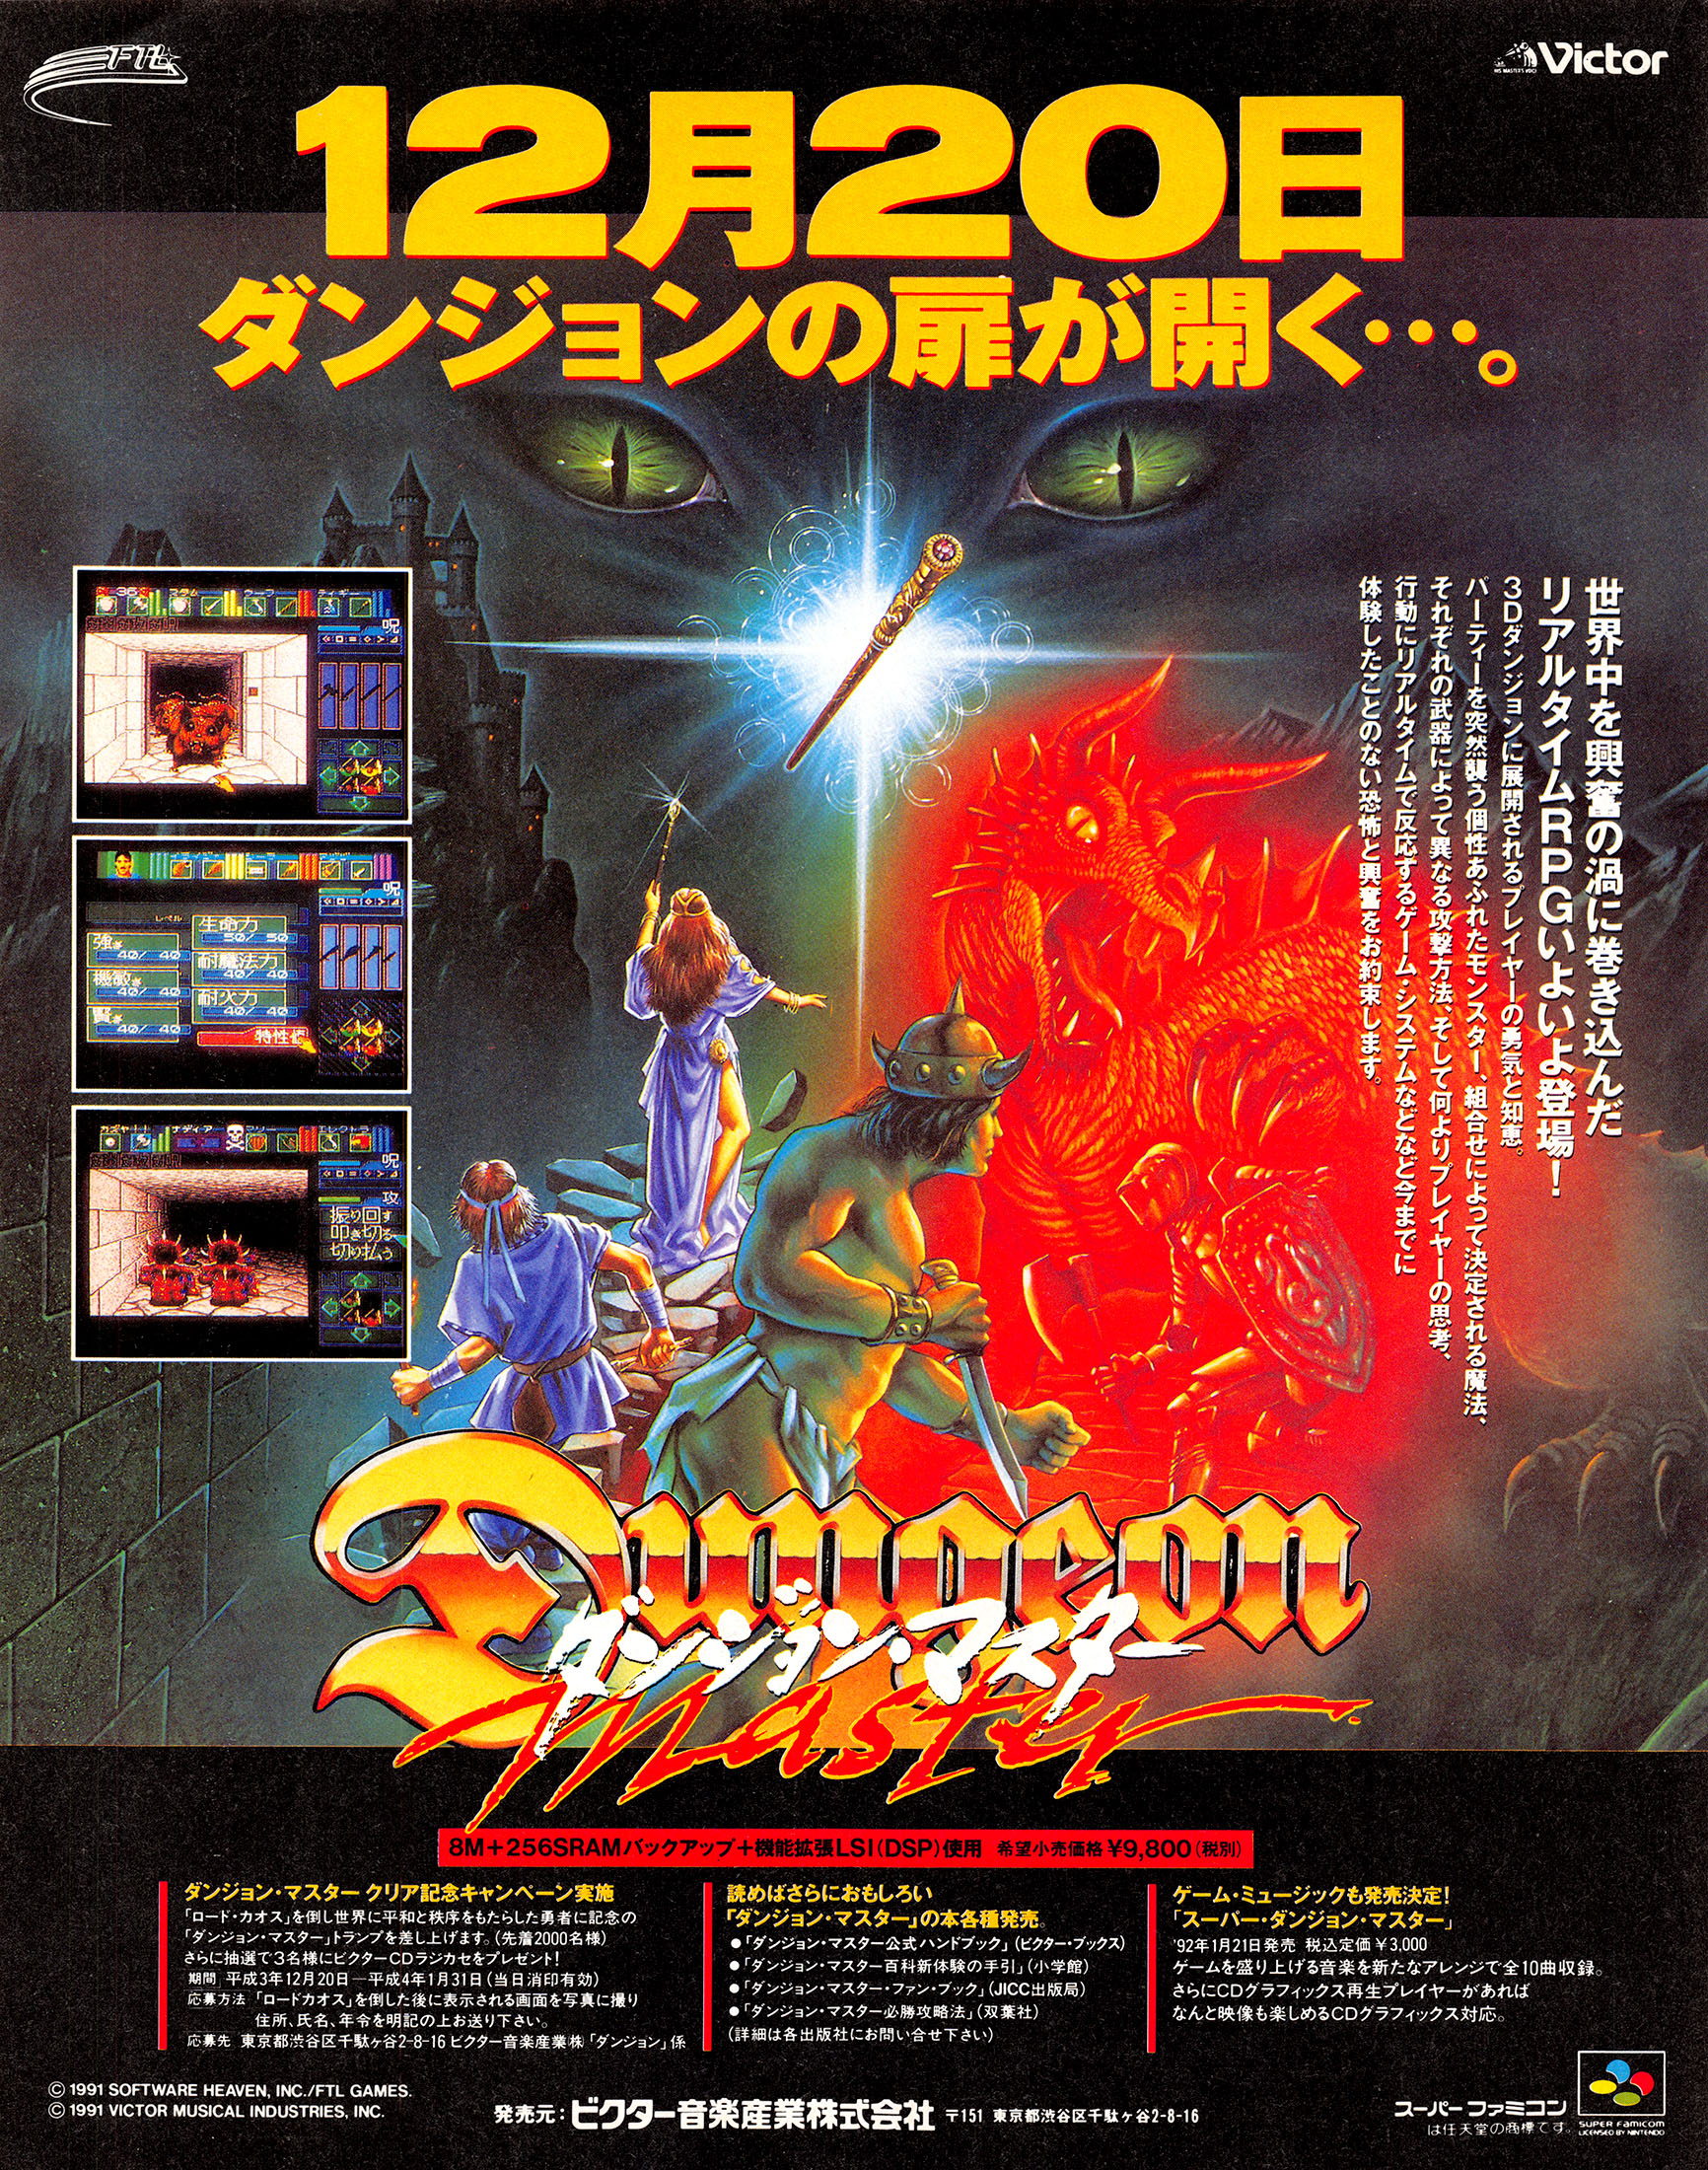 Dungeon Master for Super Famicom Advertisement published in Japanese magazine 'Famitsu', Issue #158 28 December 1991, Page 76